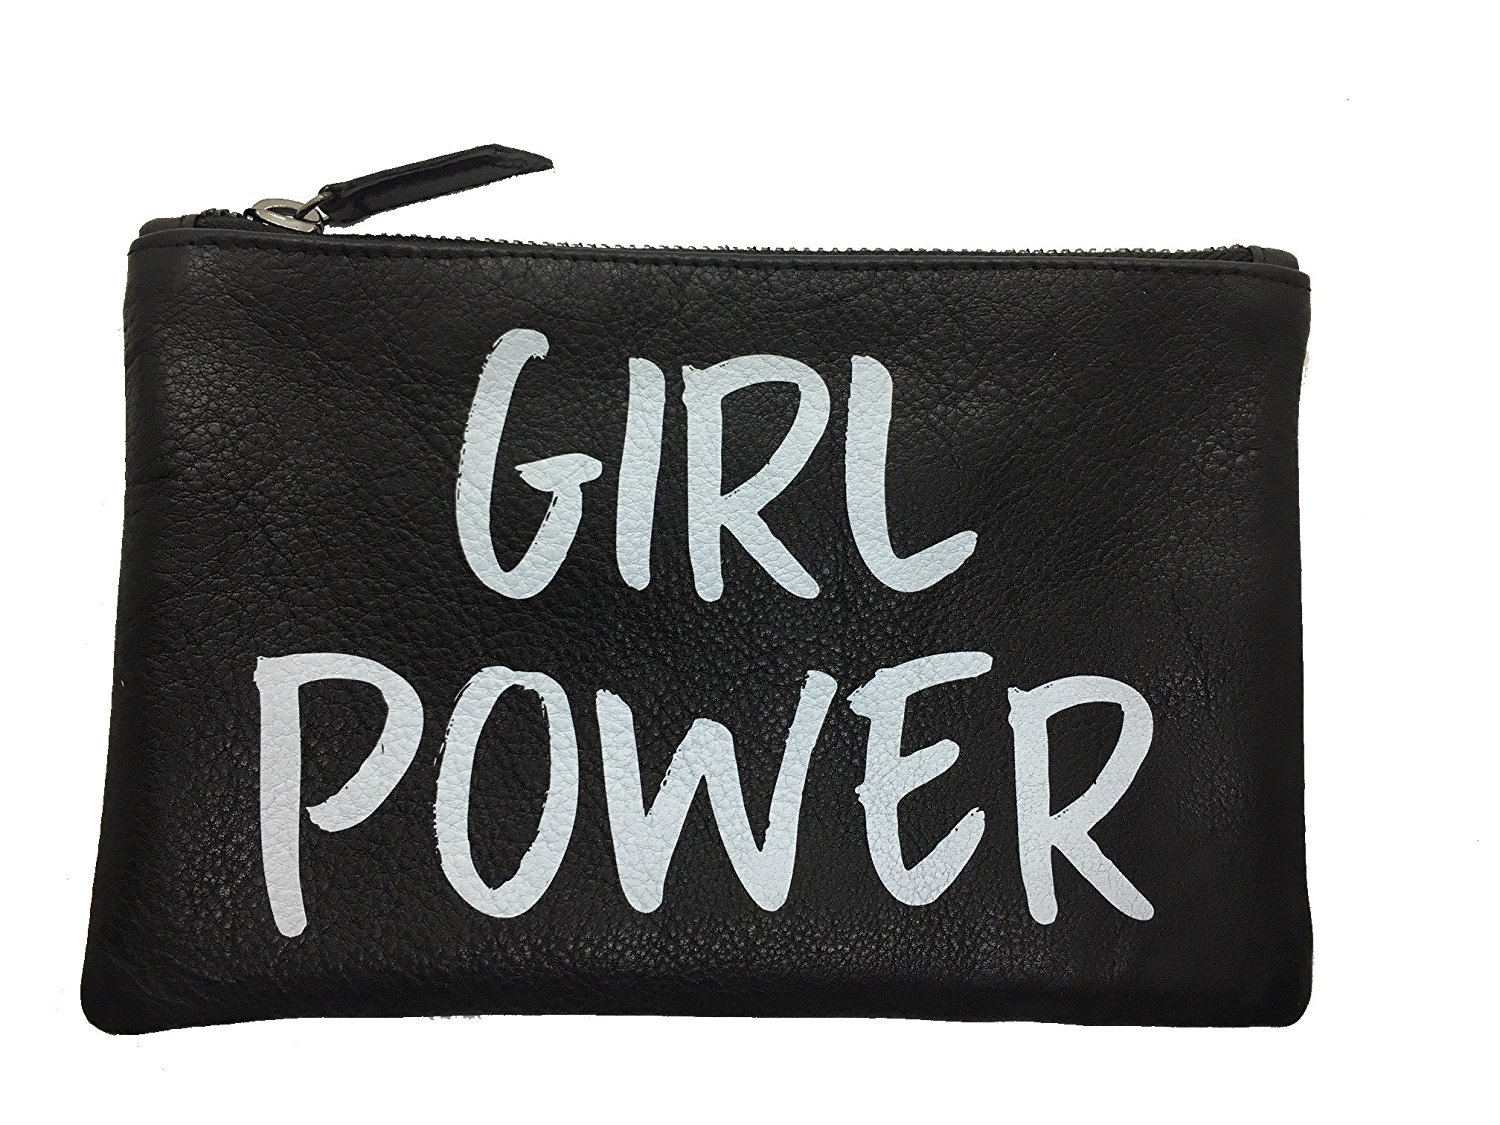 """GRIMALDI LEATHER Flat Printed Leather Clutch Black """"Girl Power"""" (5""""x8"""") LINED"""